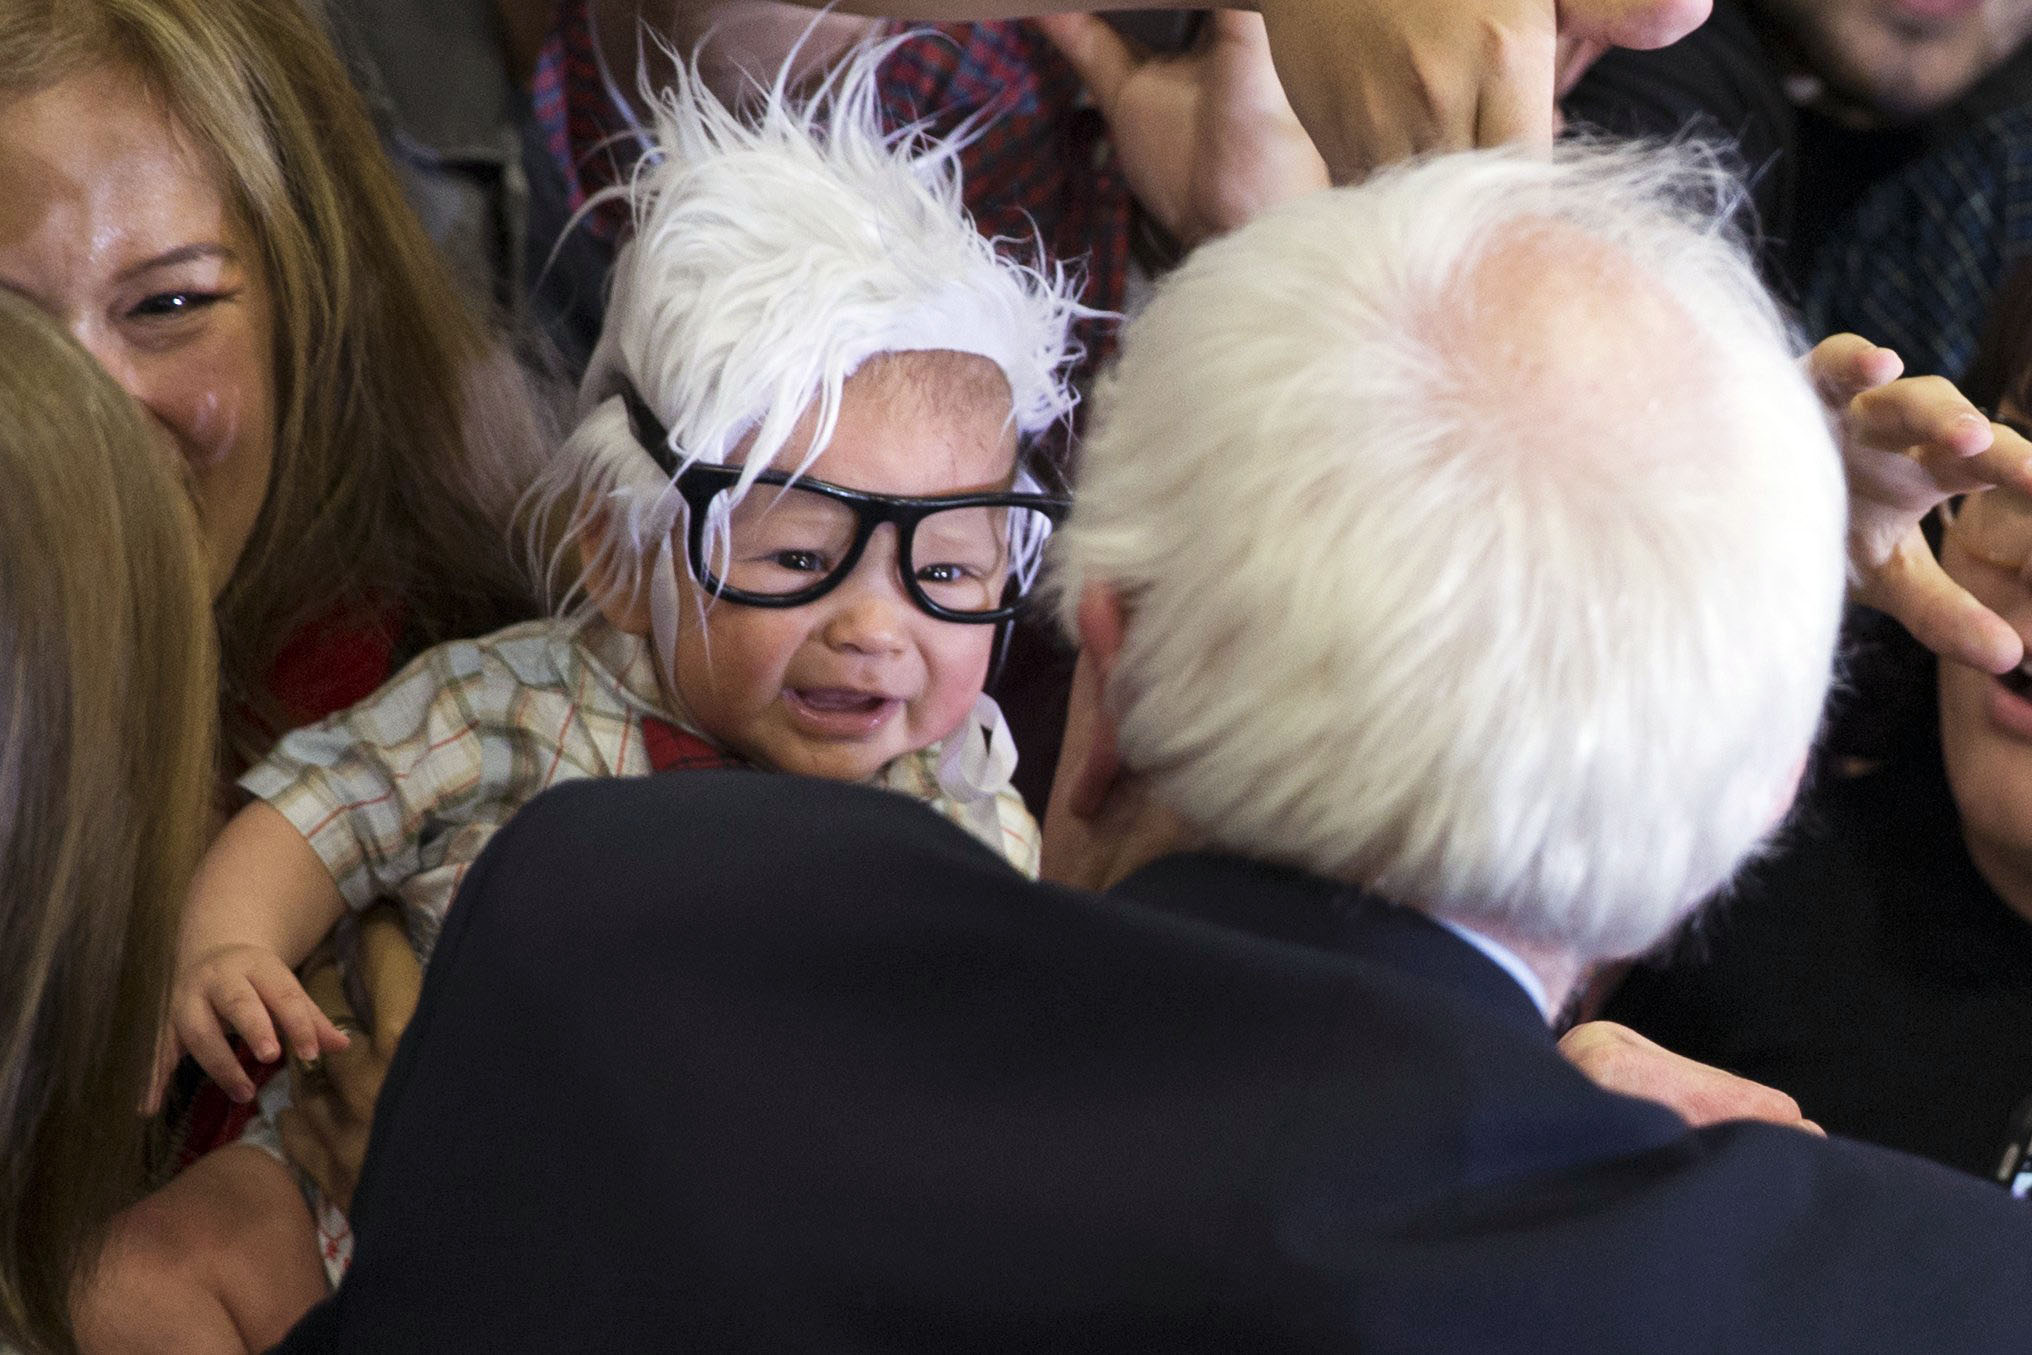 Democratic presidential candidate Sen. Bernie Sanders, I-Vt., meets 3-month-old Oliver Lomas, of Venice, Calif., during a rally at Bonanza High School, on Feb. 14, 2016, in Las Vegas.